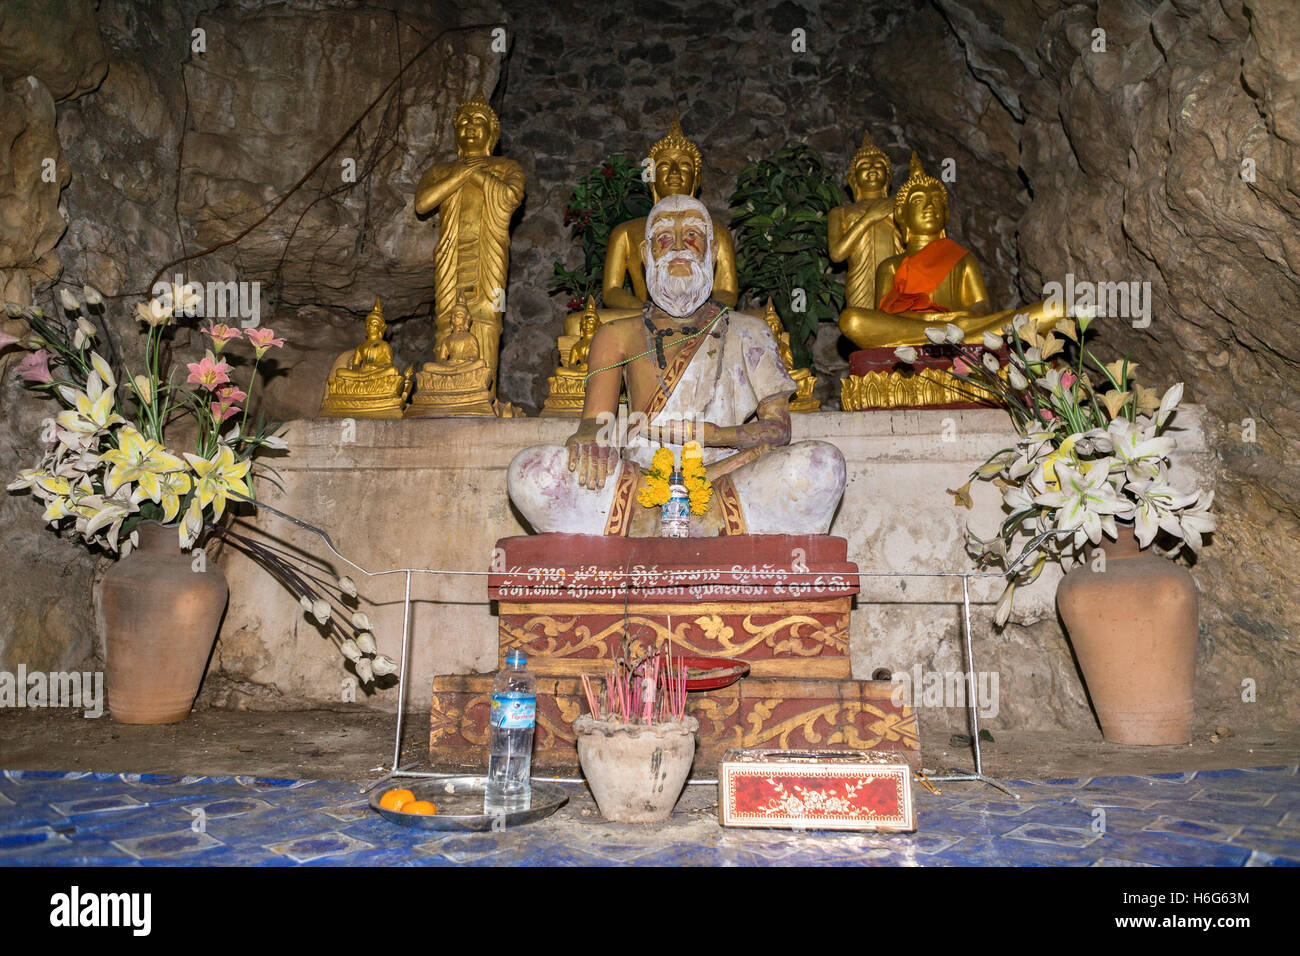 That Chomsi Temple Luang Prabang Laos - hermit who founded the temple - Stock Image